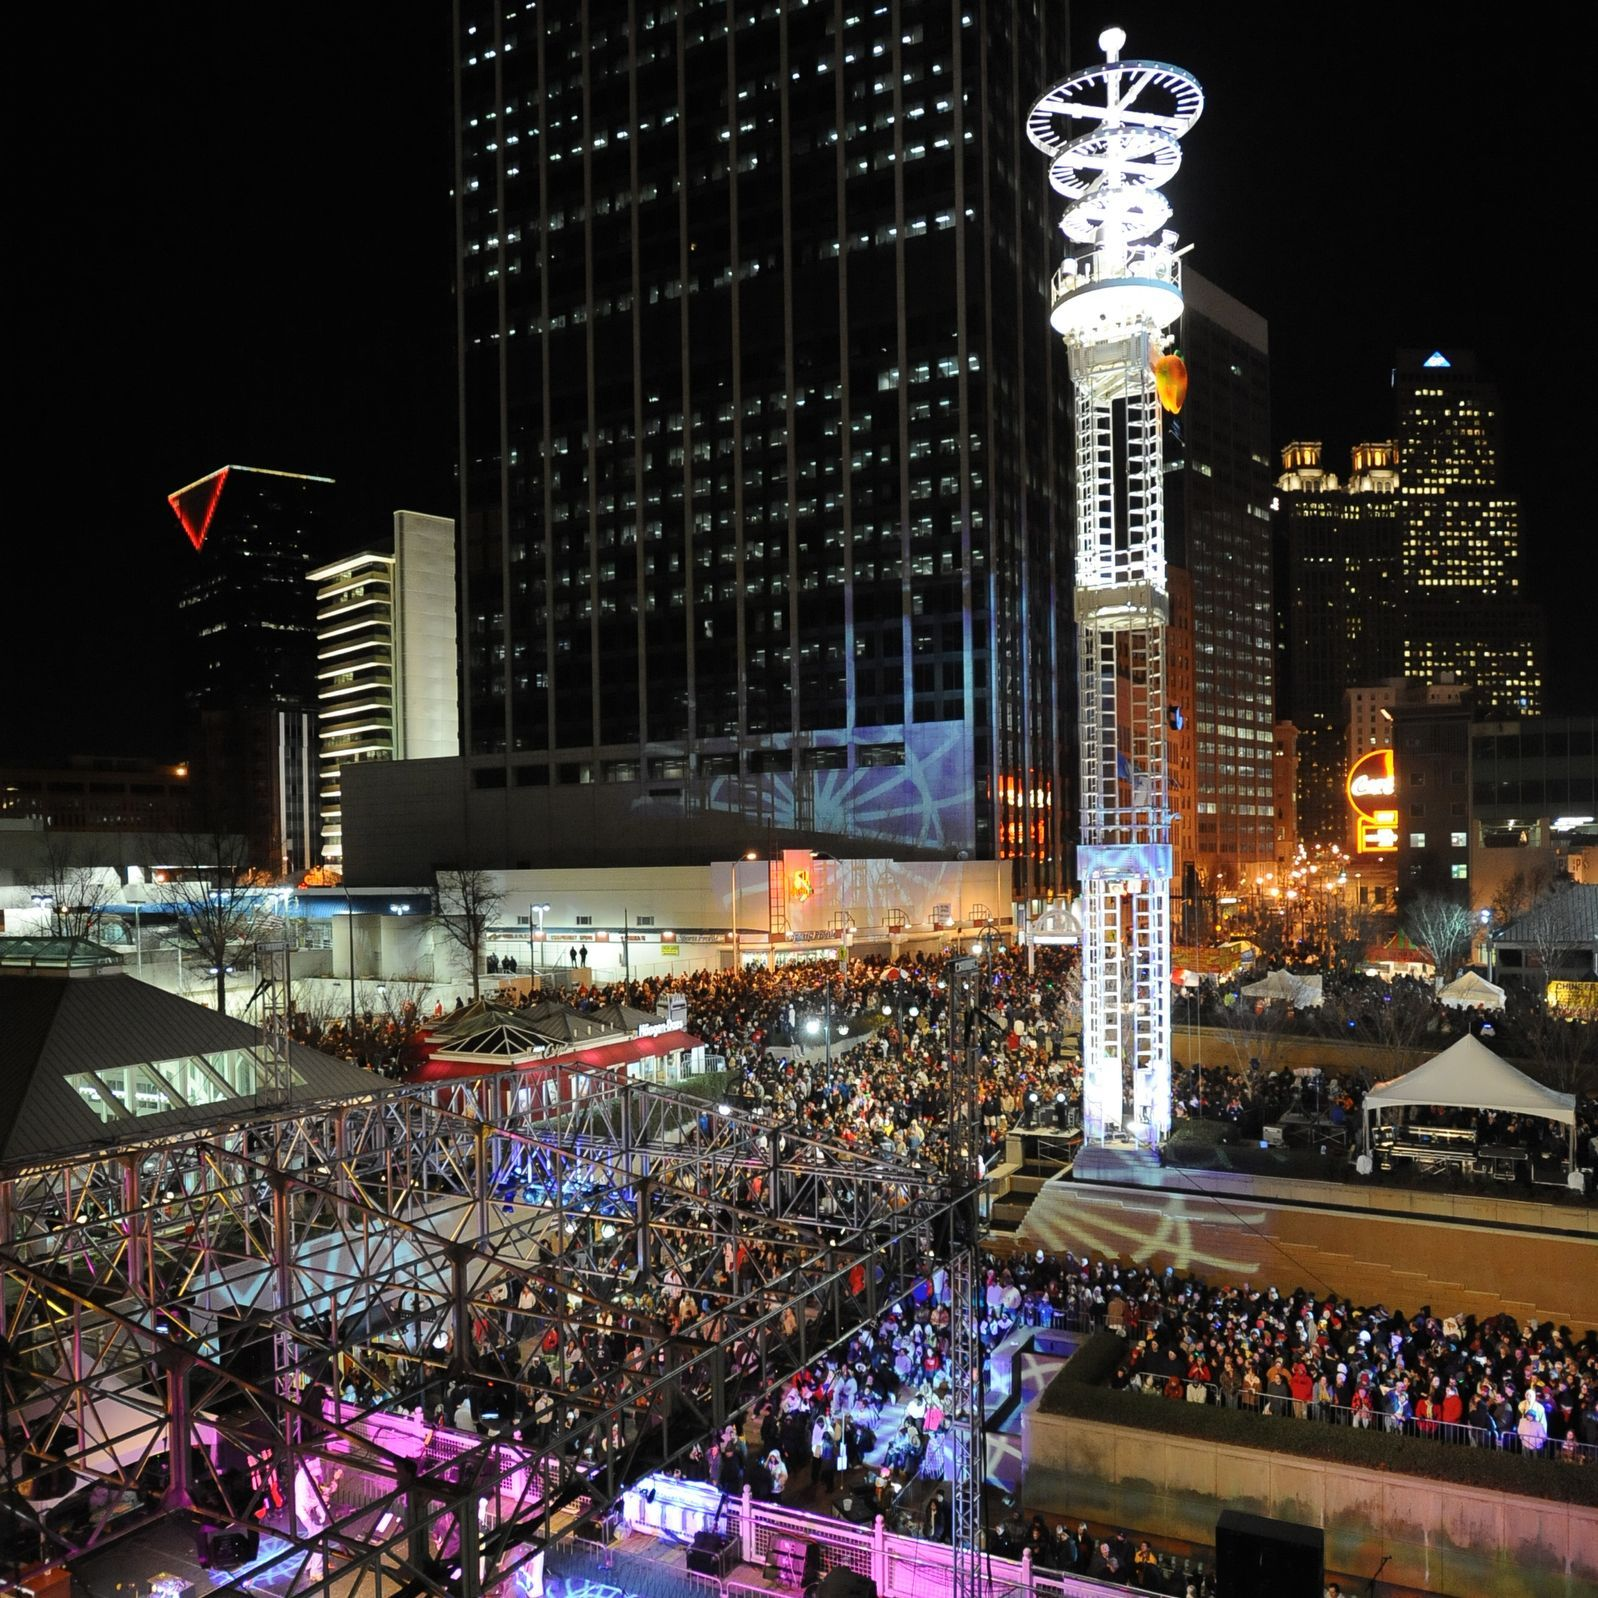 The annual Peach Drop in Atlanta is the largest New Year's